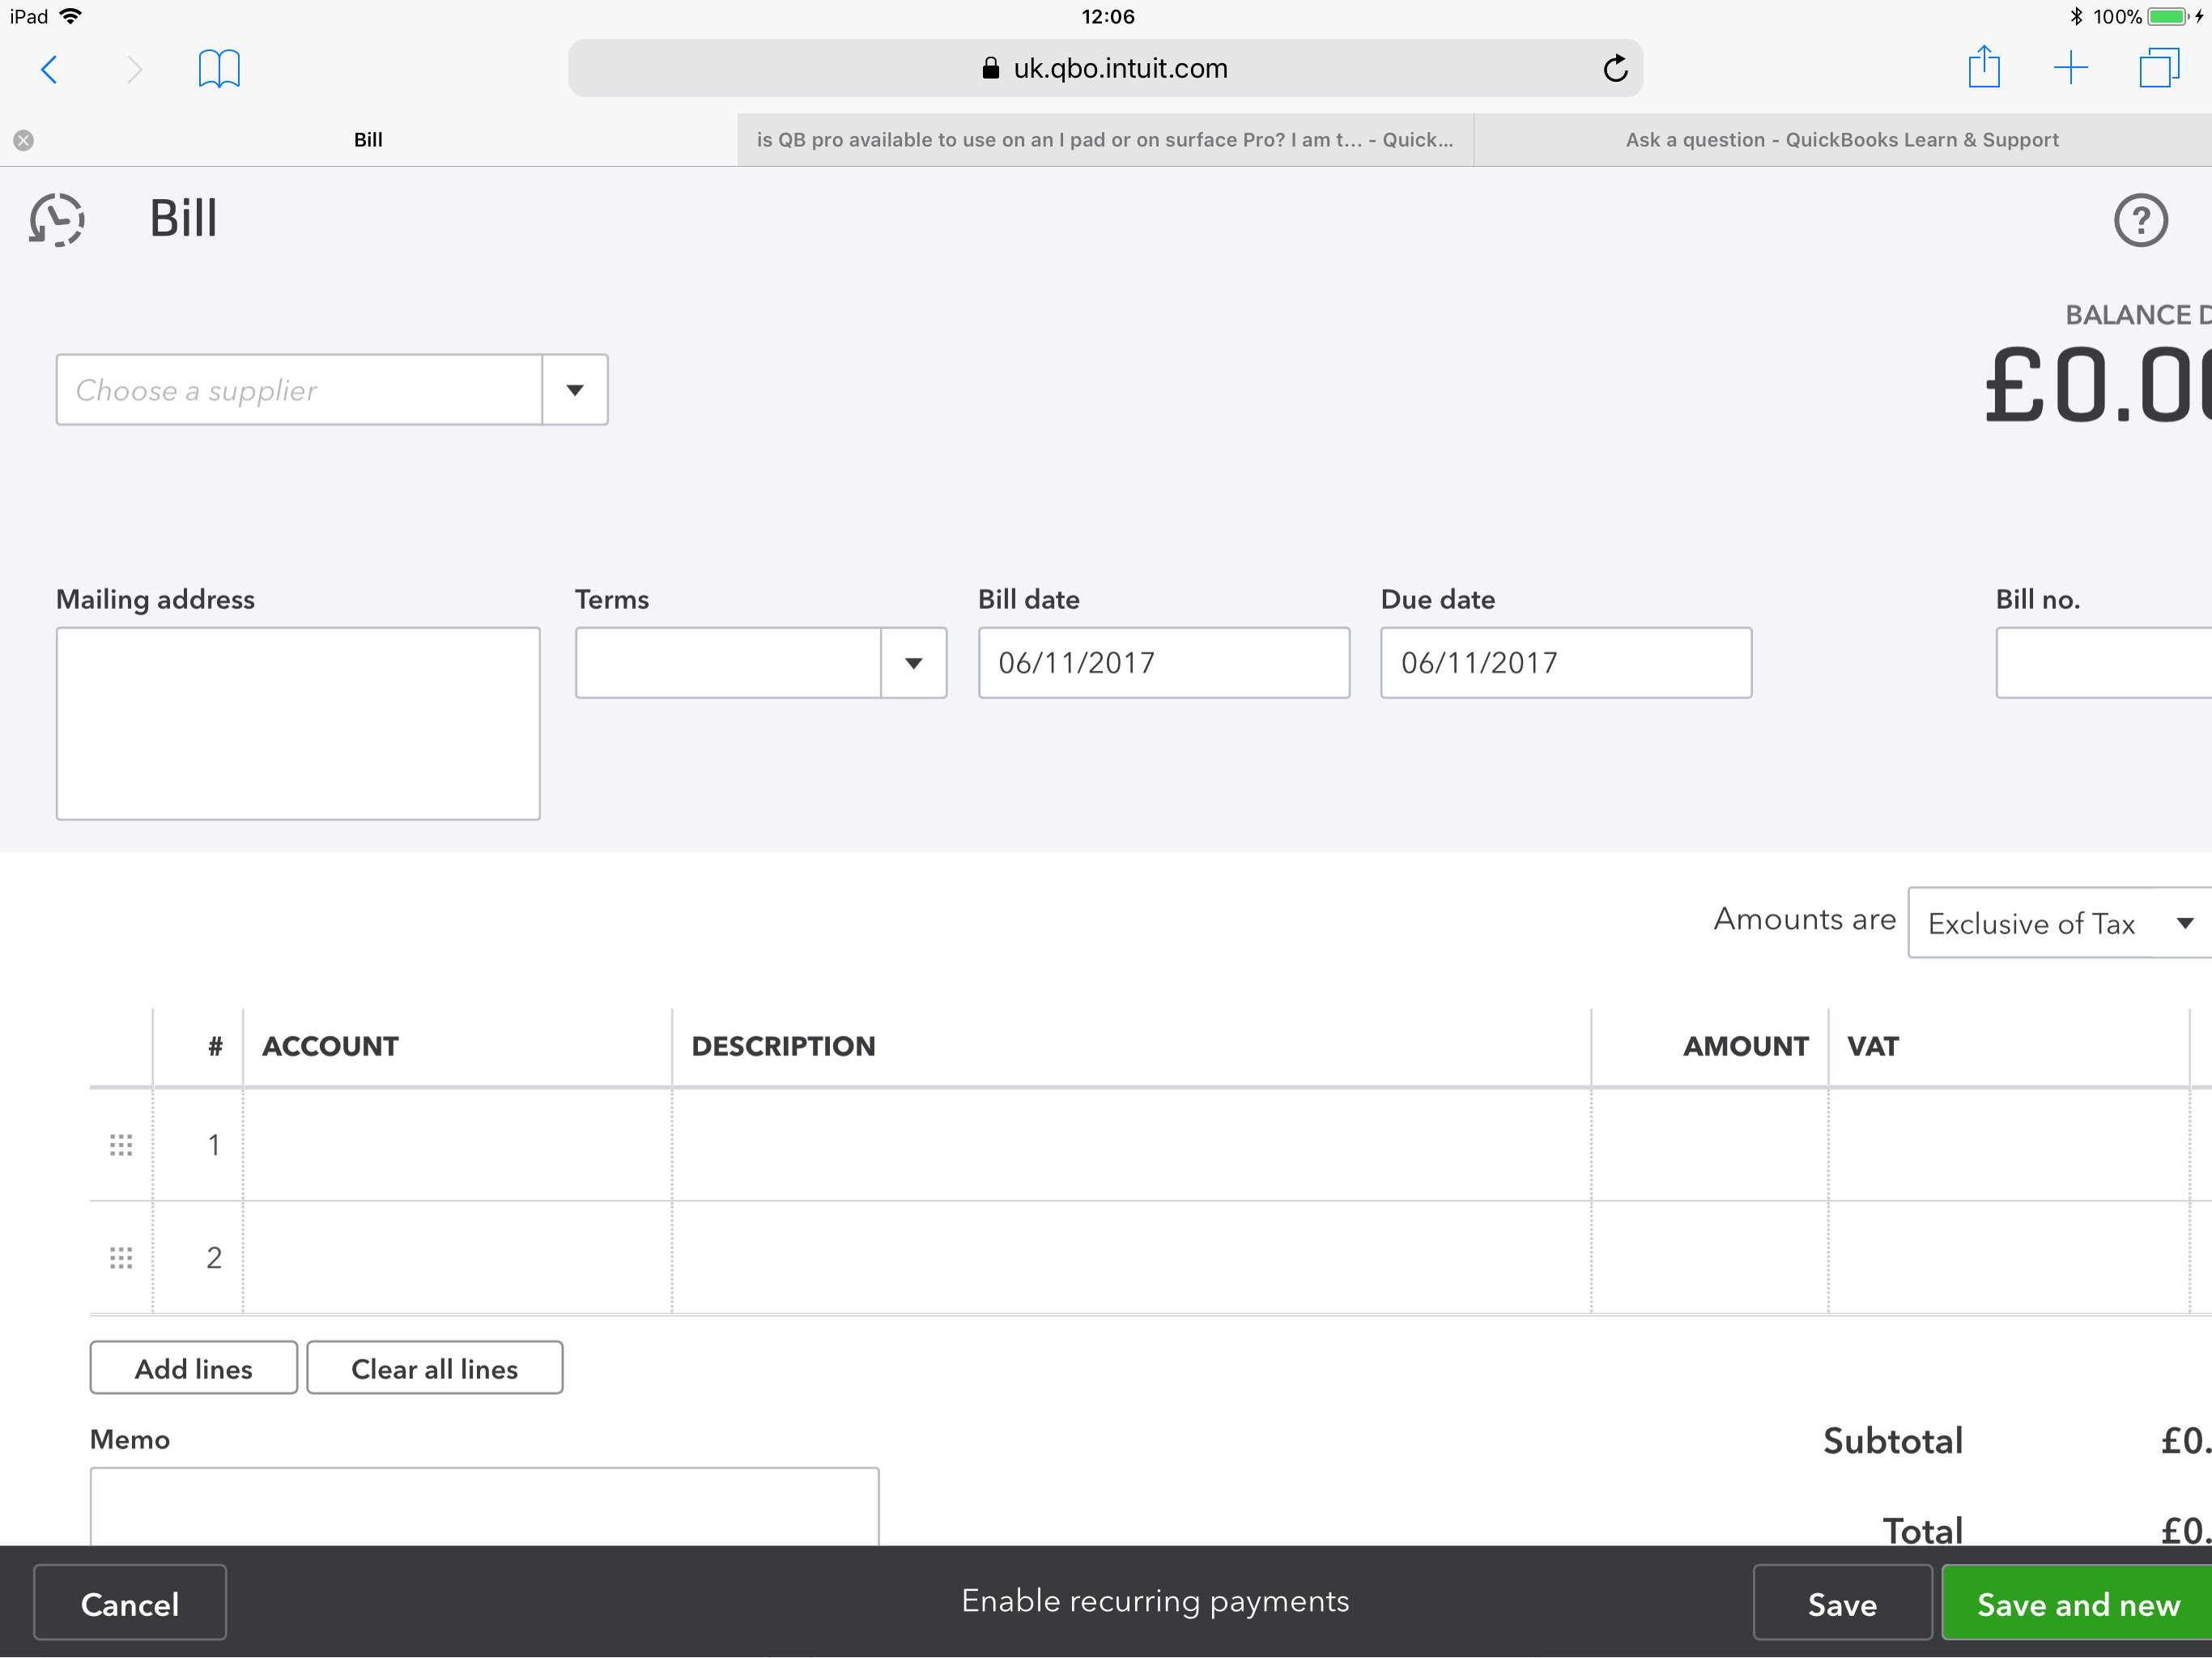 Im A Newcomer To Quickbooks Viewing On A New IPad Pro However - Quickbooks invoice app